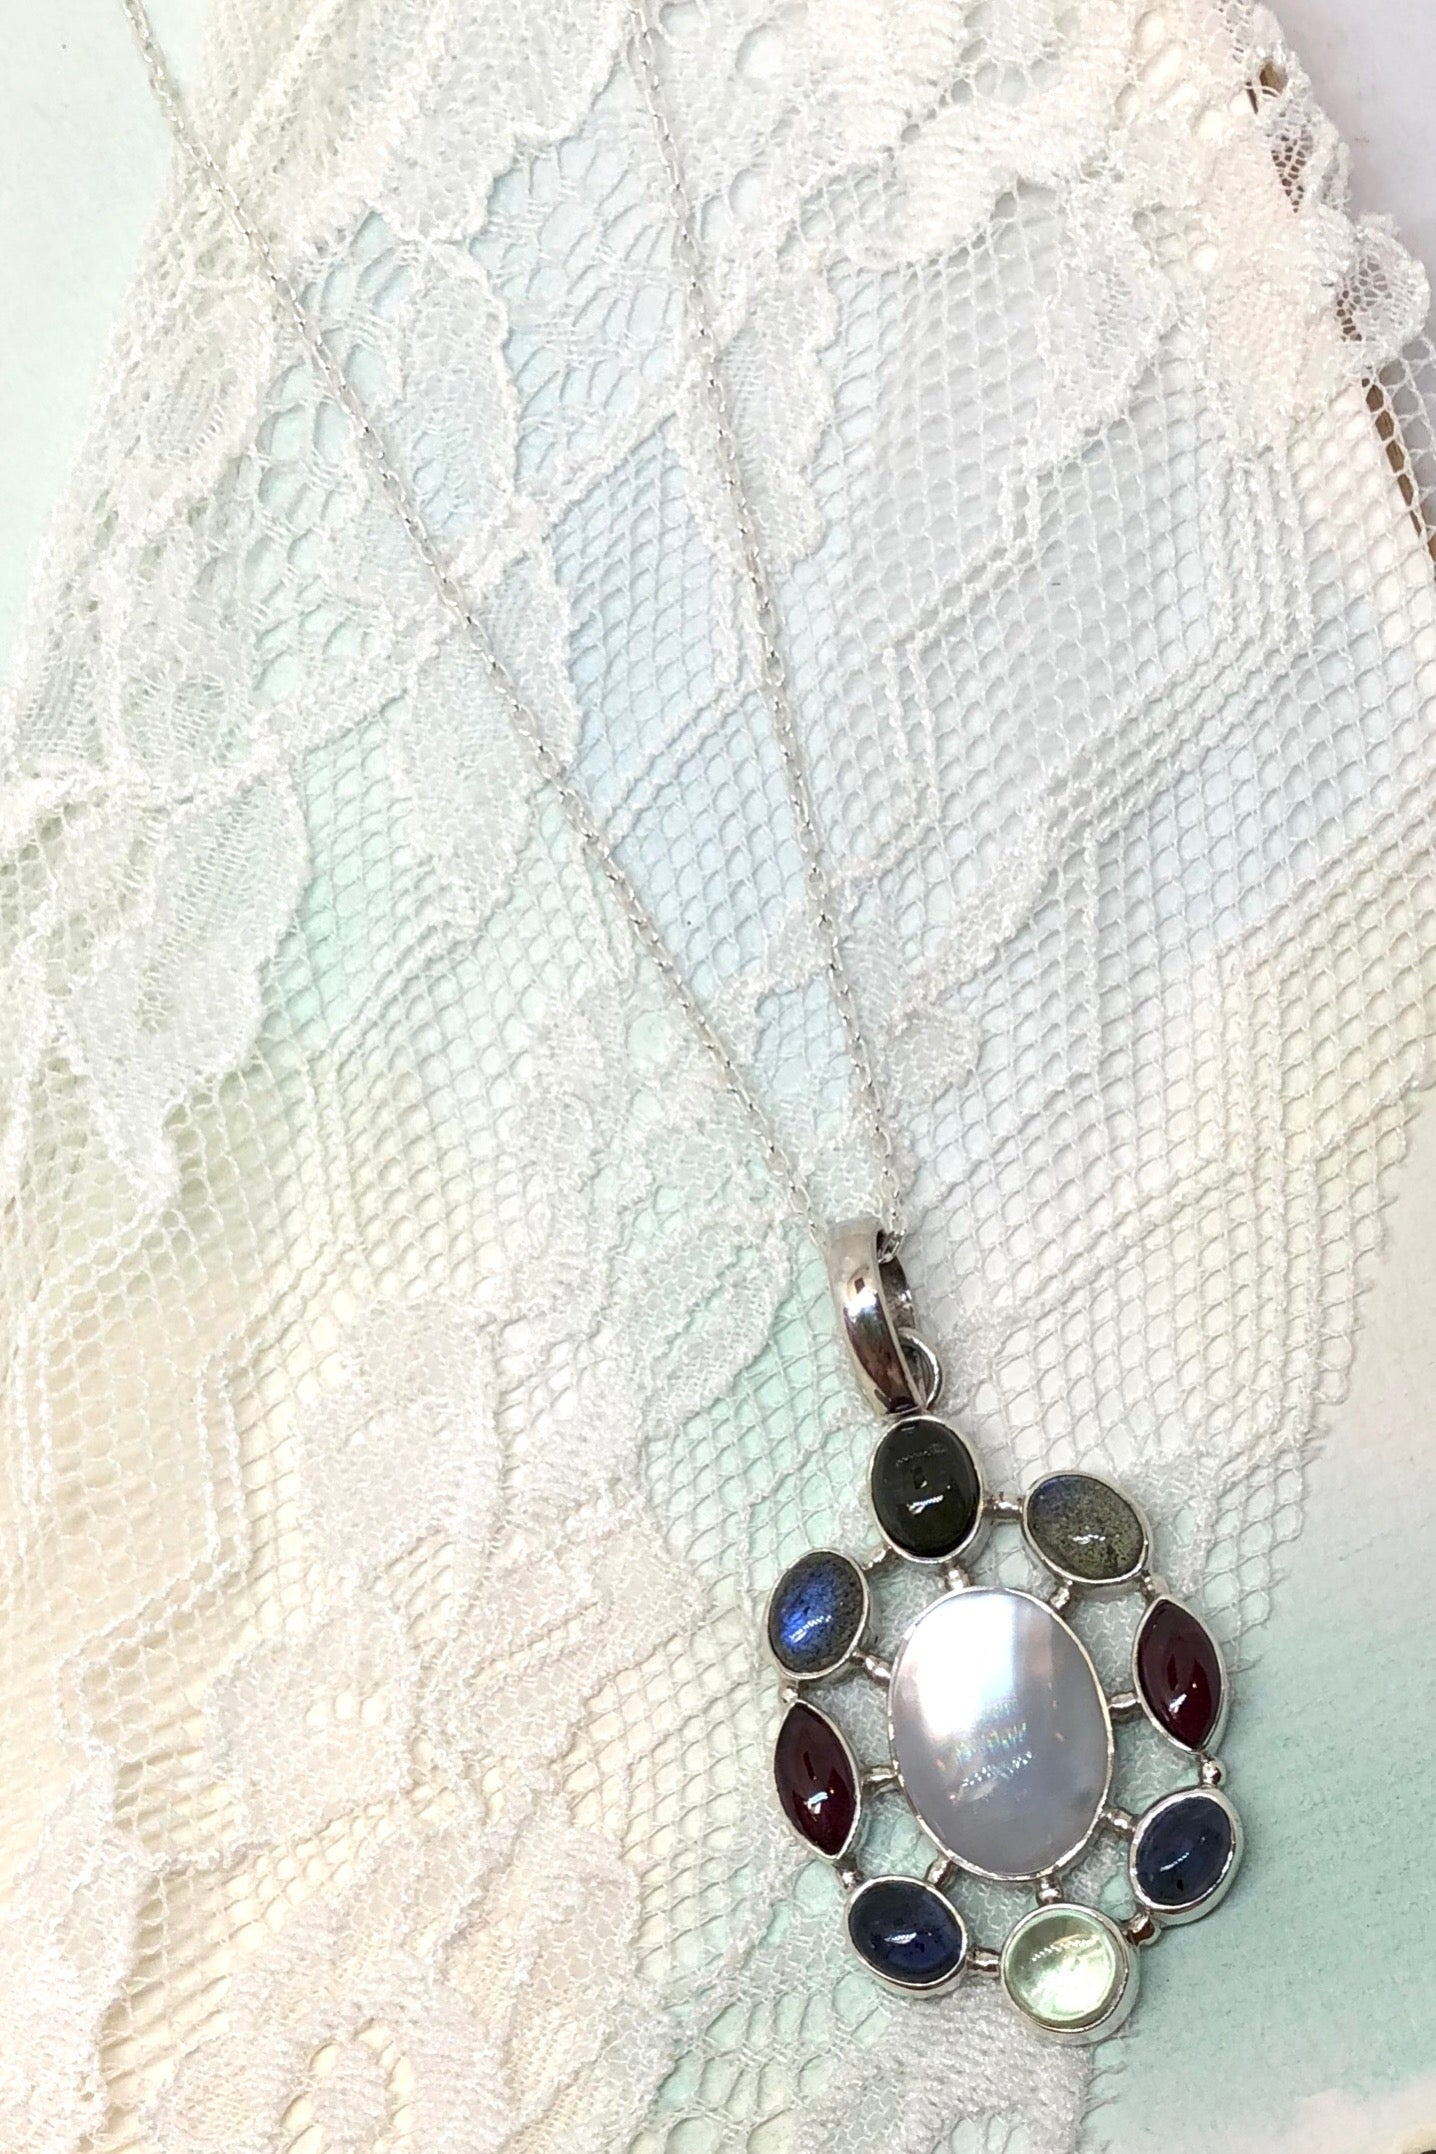 Echo Pendant Silver Gem Cosmos is a handmade pendant with Citrine, Tourmaline, Iolite around moonstone and comes on a 43 cm chain.